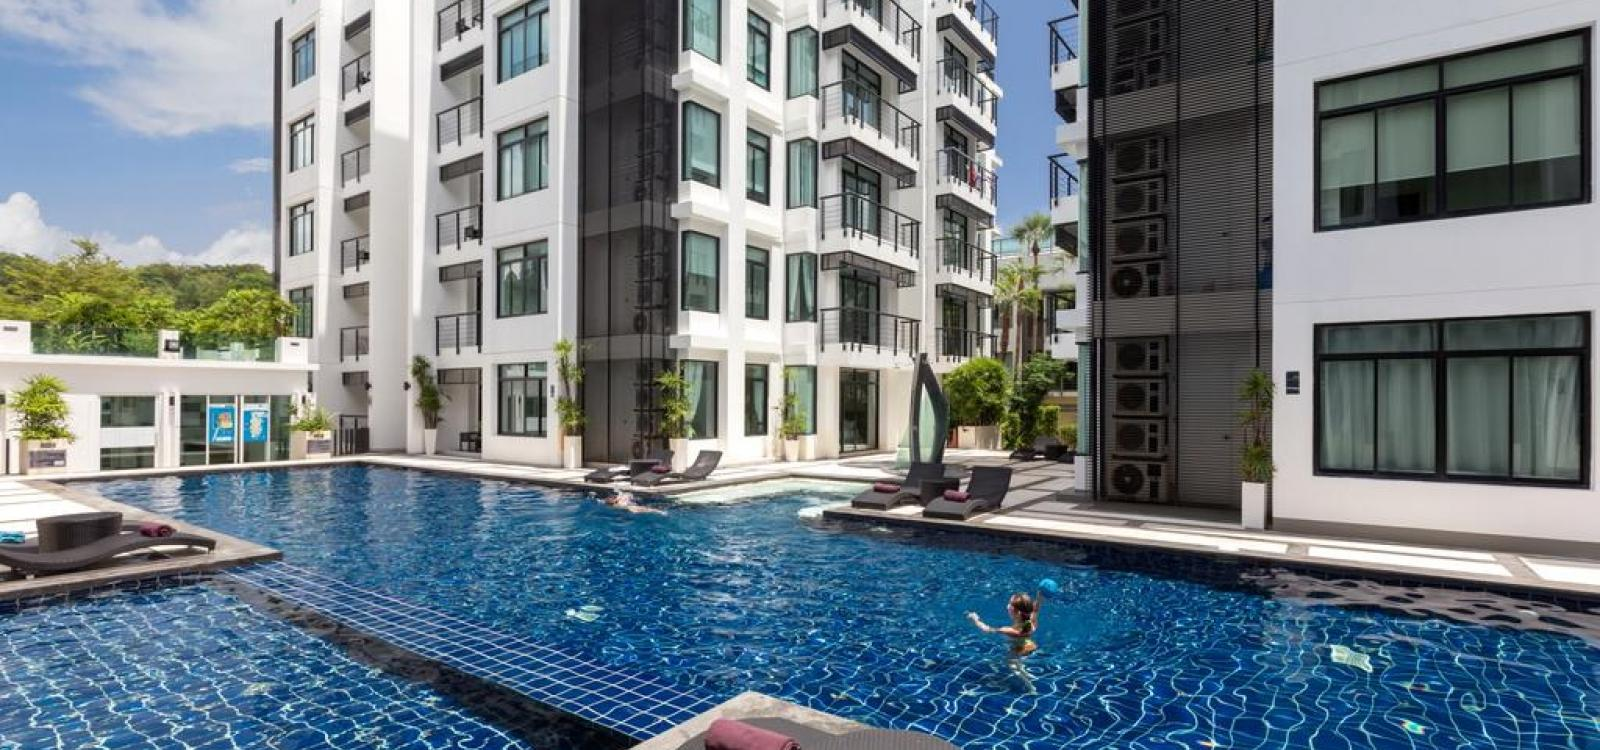 Kamala Regent C202 - Trendy apartment with pool and gym, walk to beach